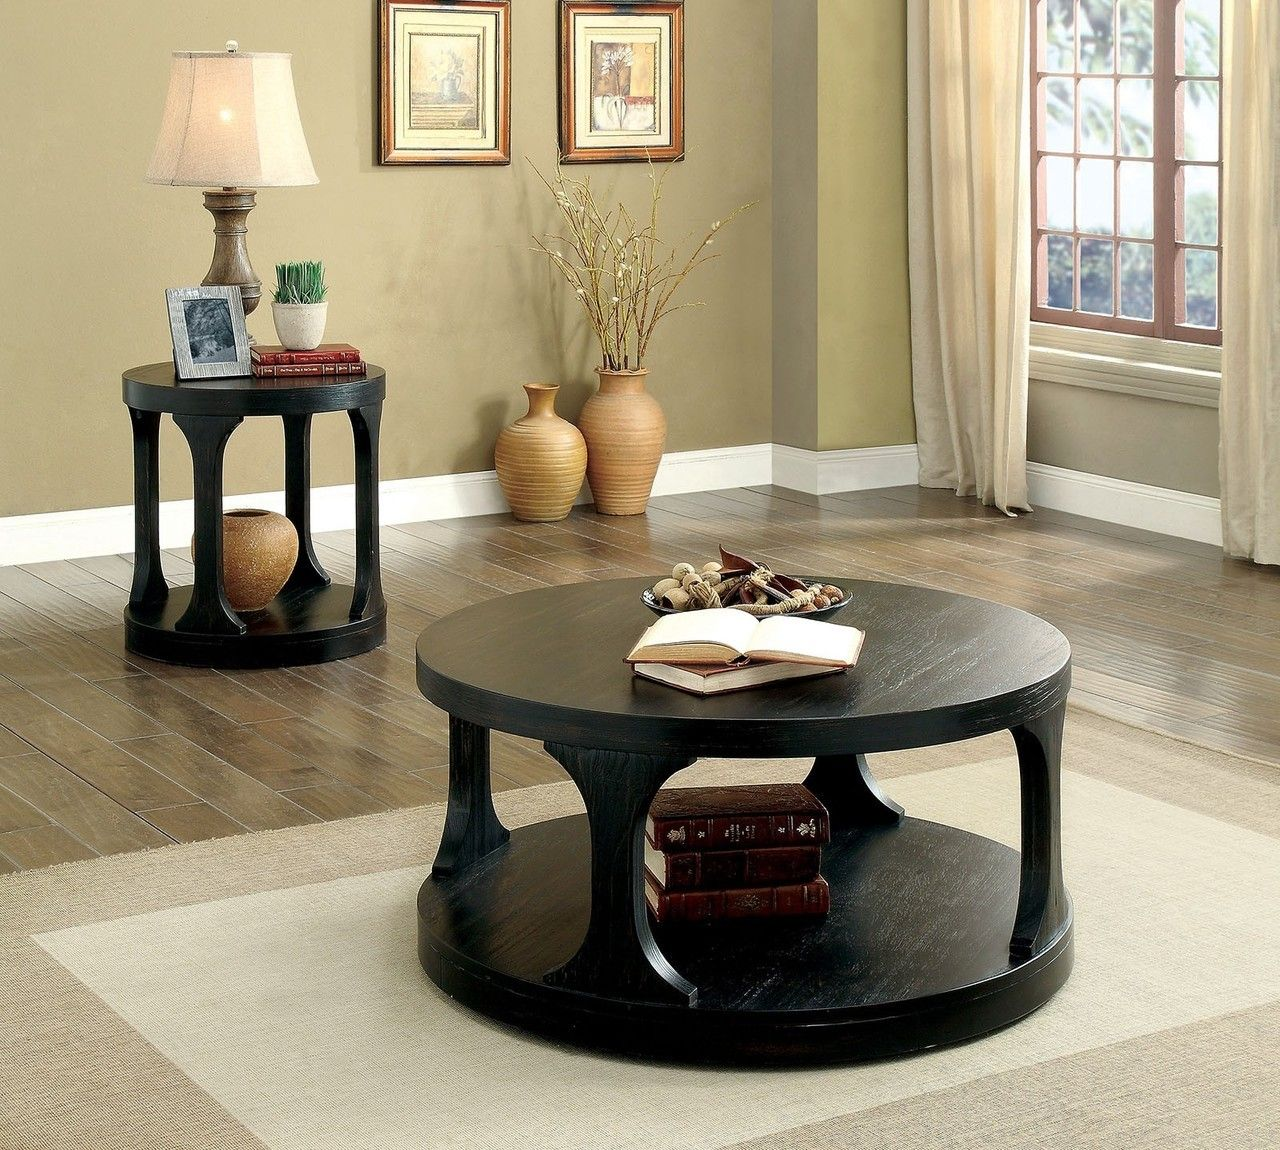 Furniture of america cm4422 round cocktail table coffee